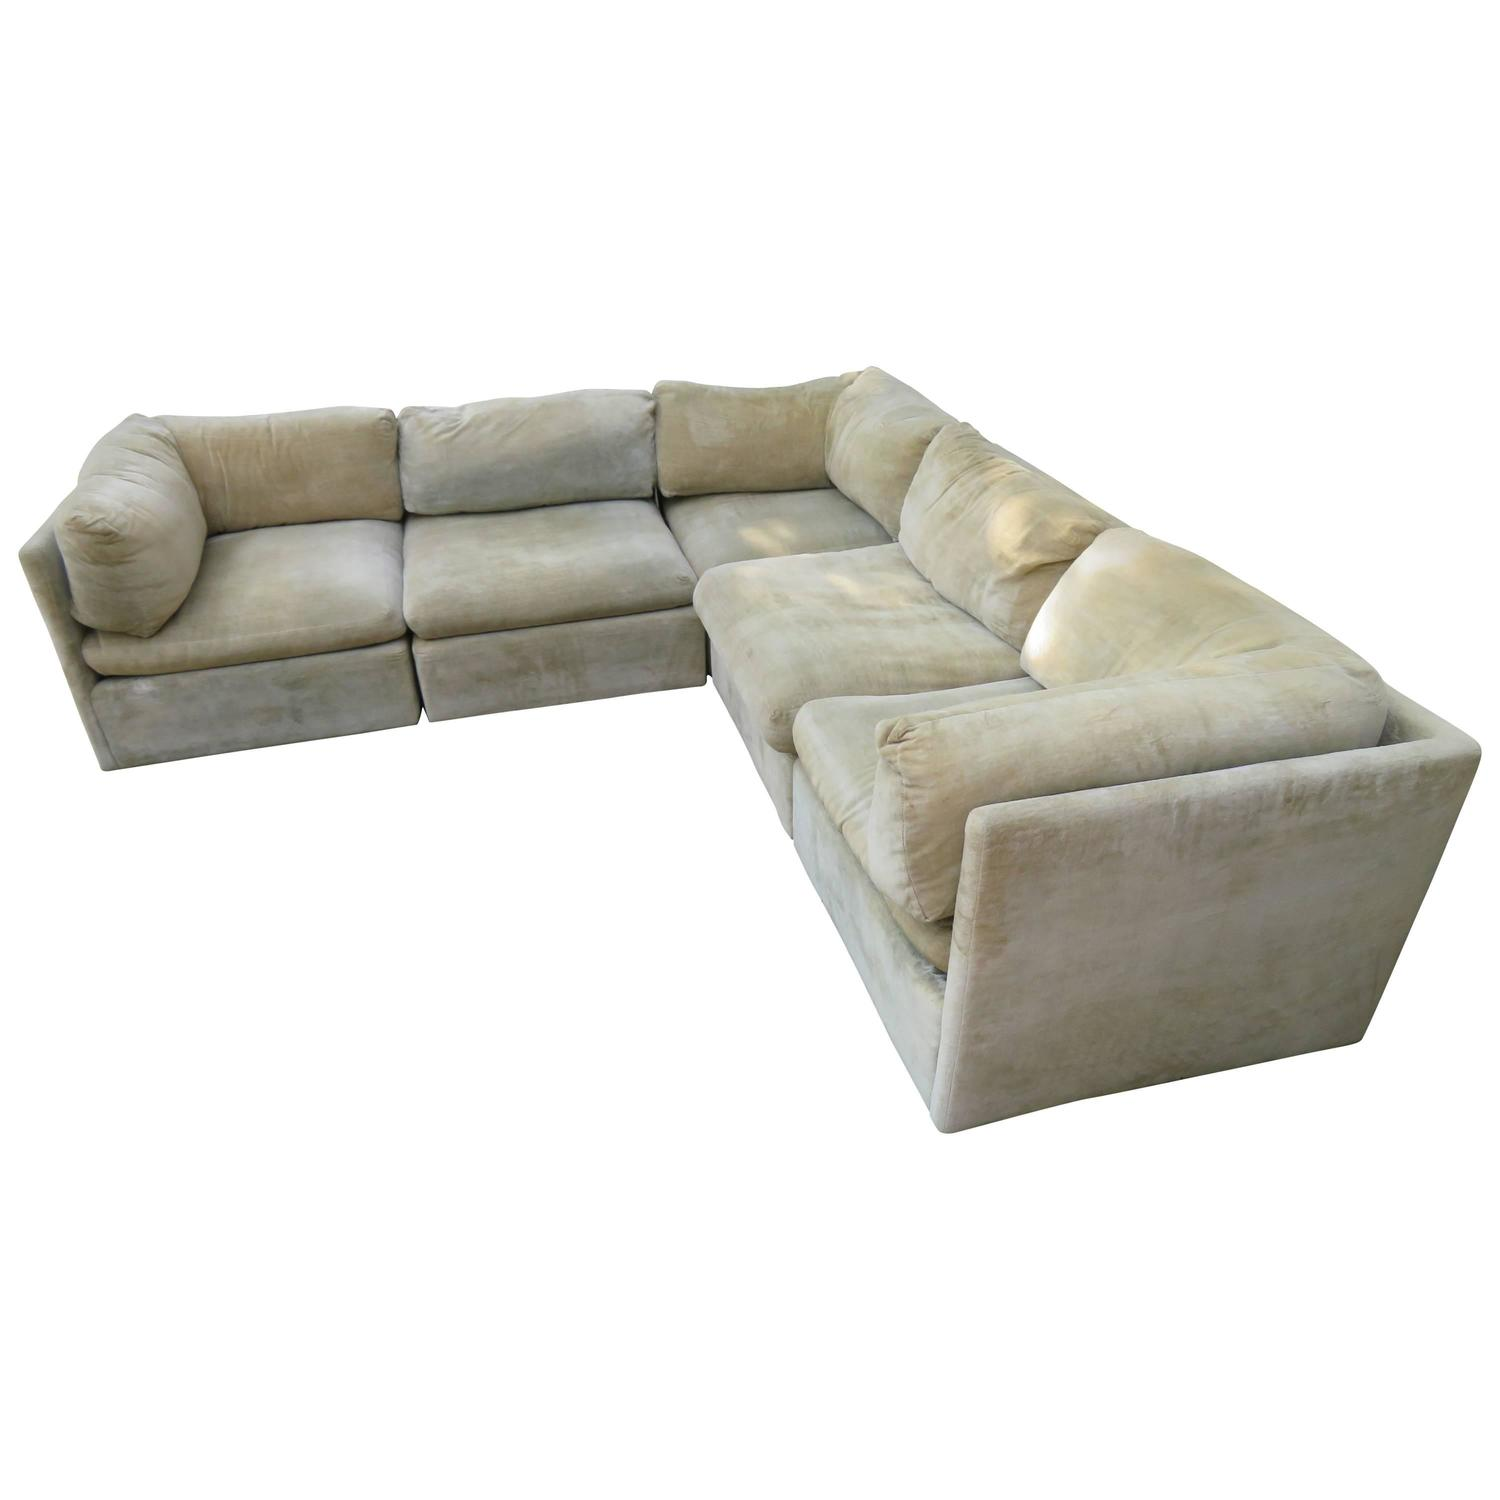 Mid century Hexagonal Sectional Sofa in the Style of Milo Baughman